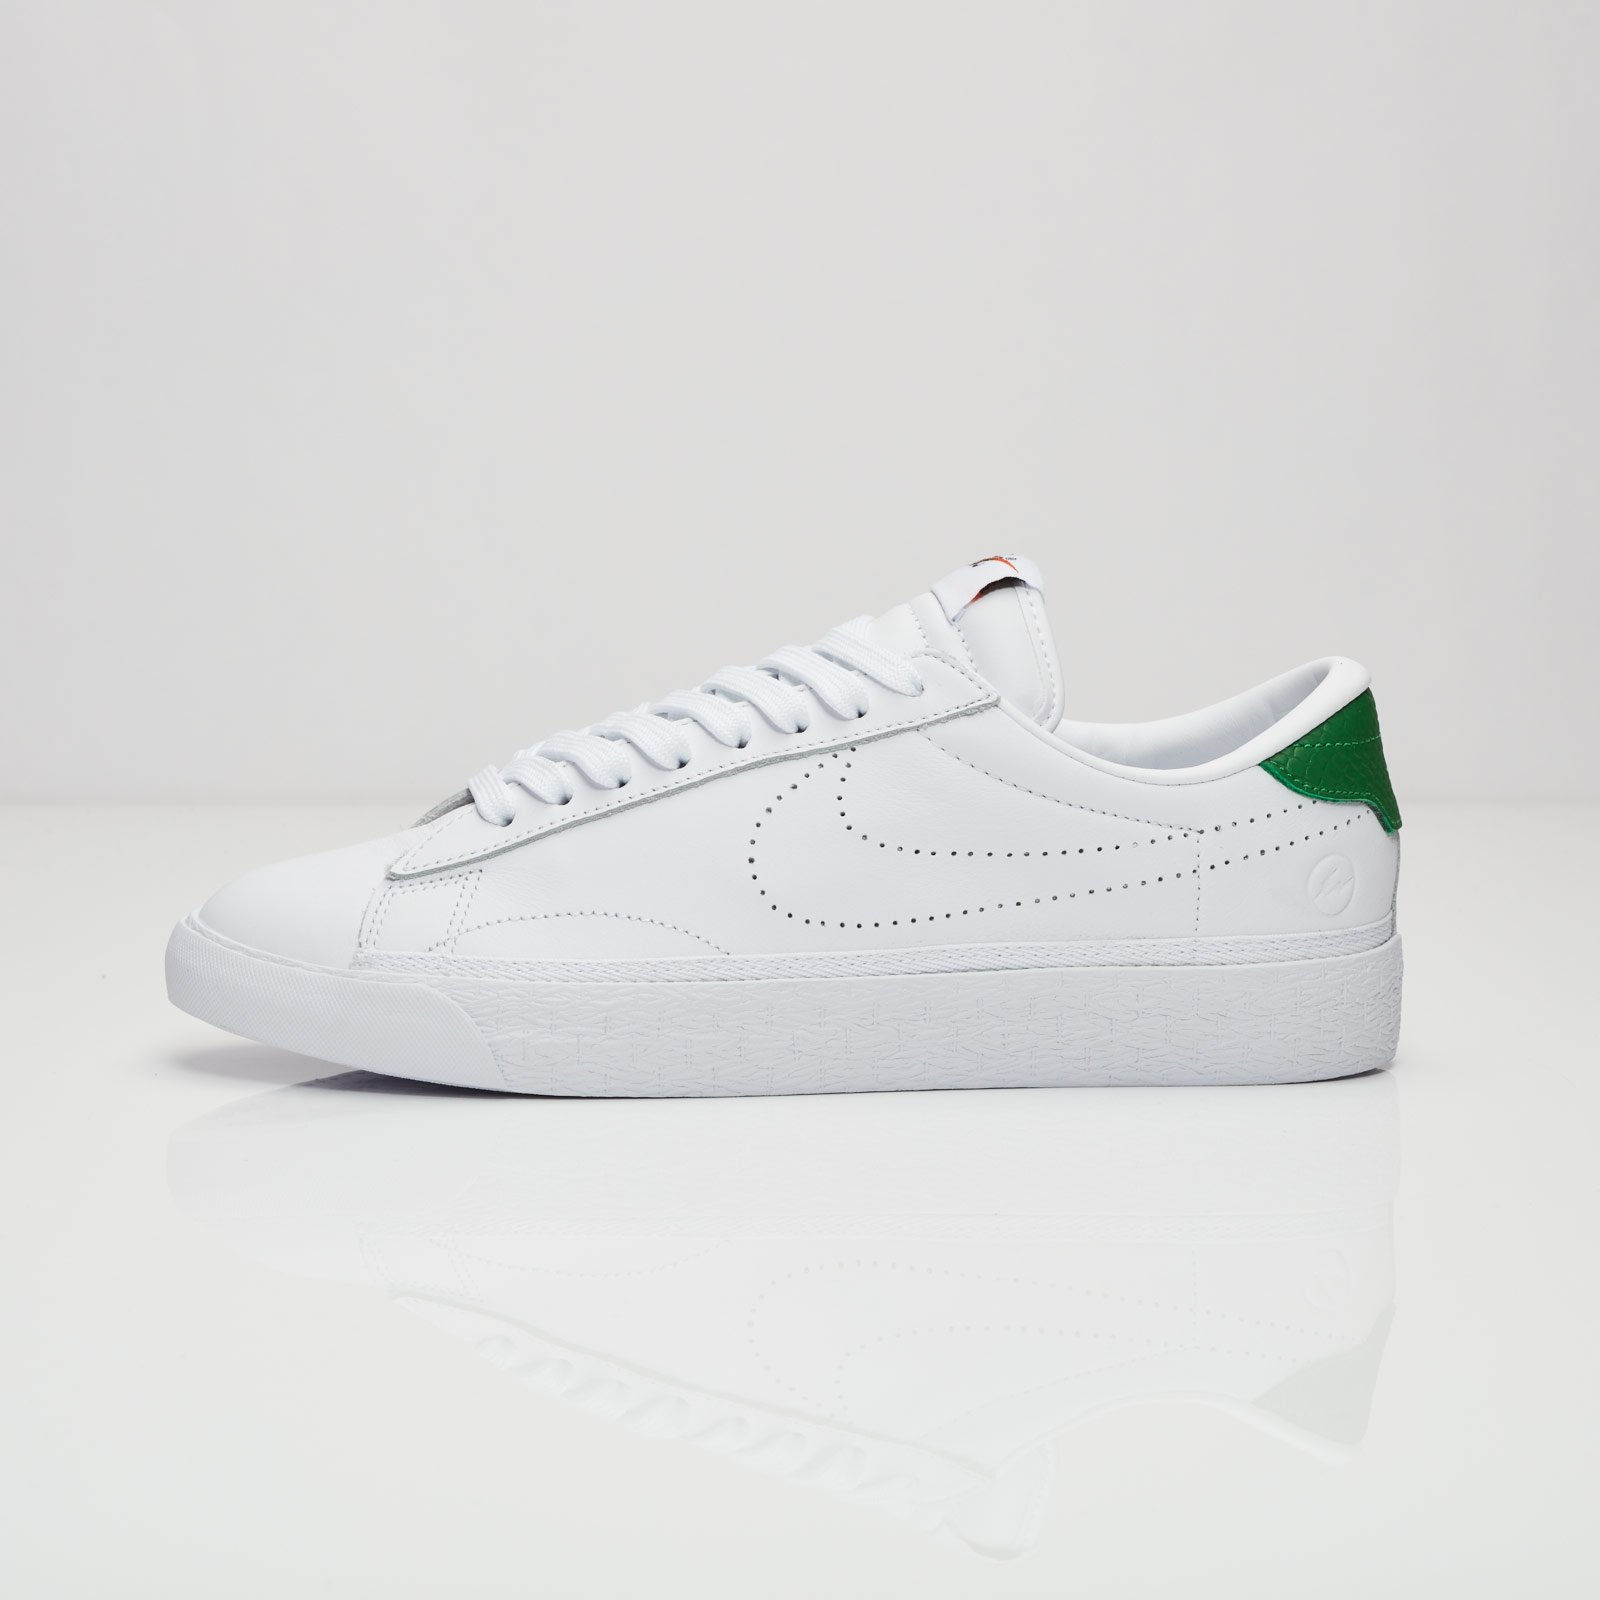 new product 03f1e 3b5f1 Nike Air Zoom Tennis Classic AC   Fragment - 857953-113 - Sneakersnstuff    sneakers   streetwear online since 1999